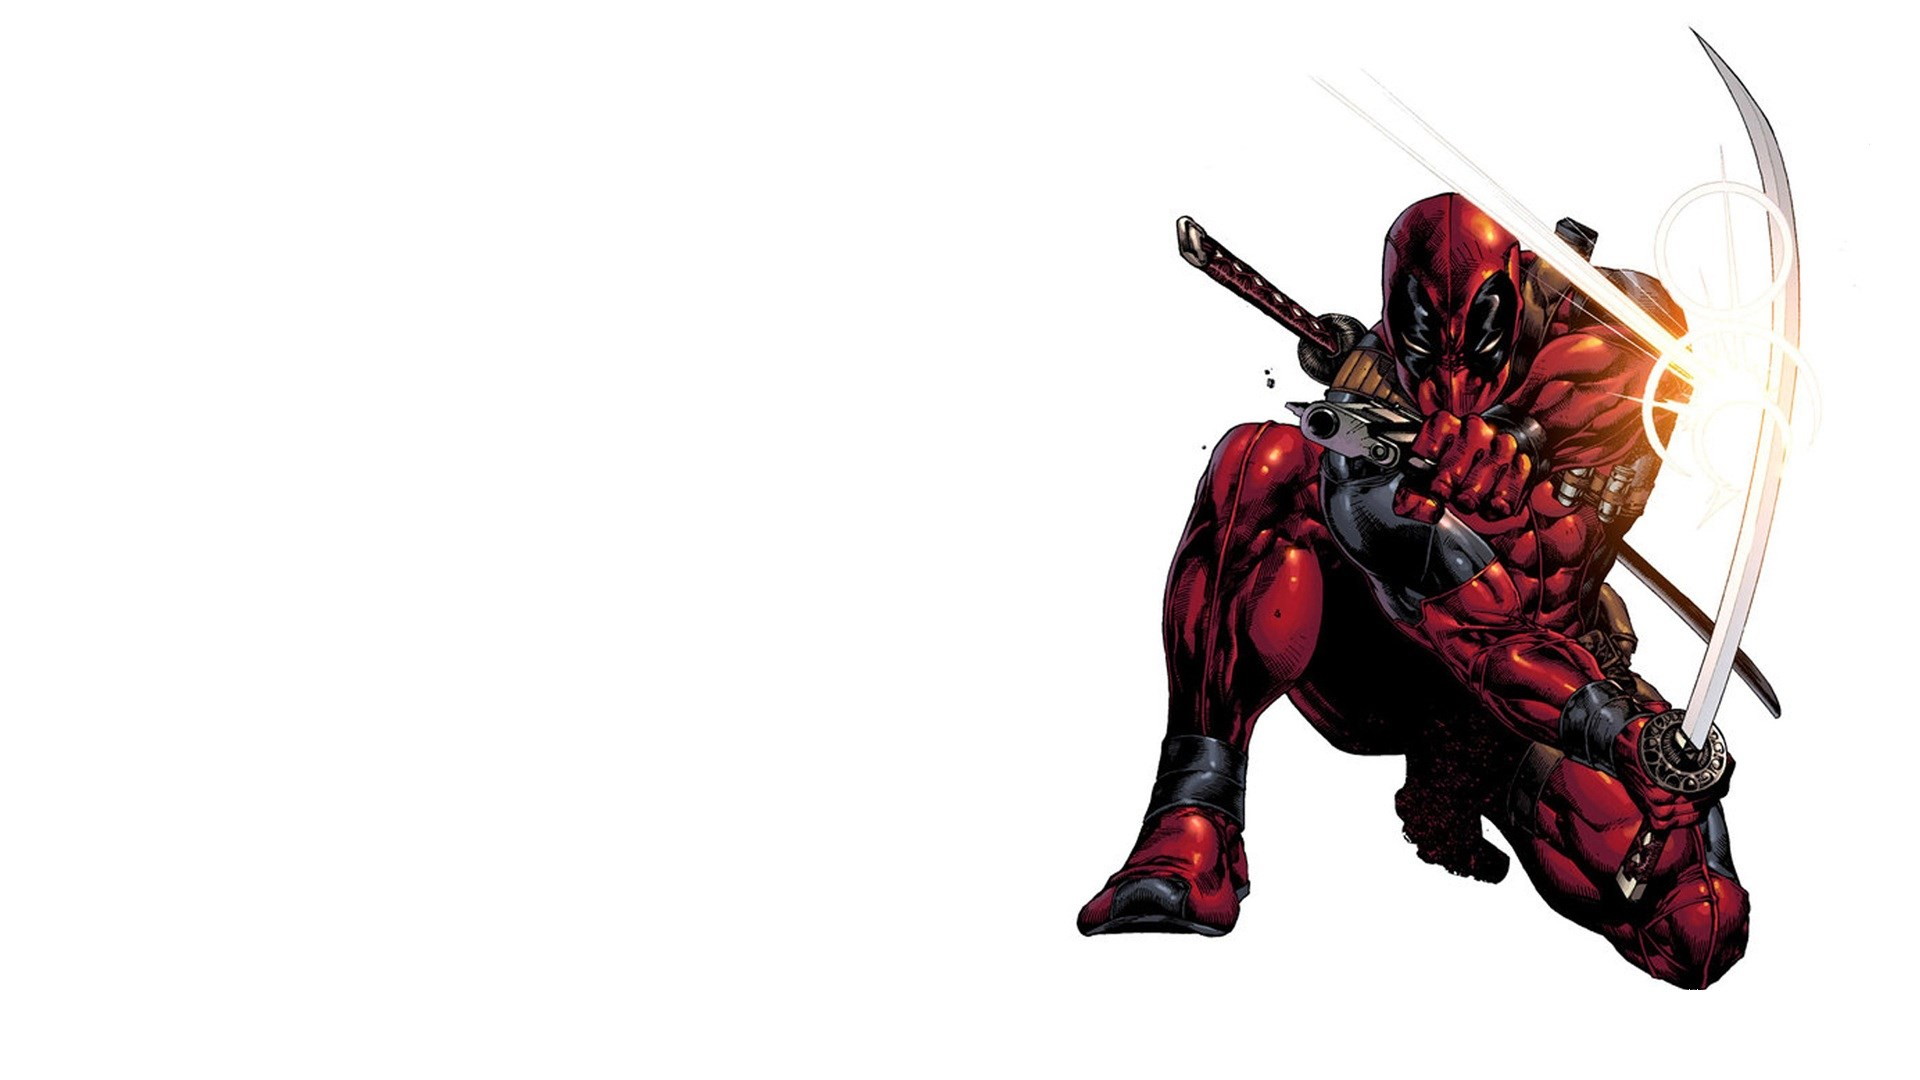 deadpool-backround-1080p-windows-wallpaper-wp3601106